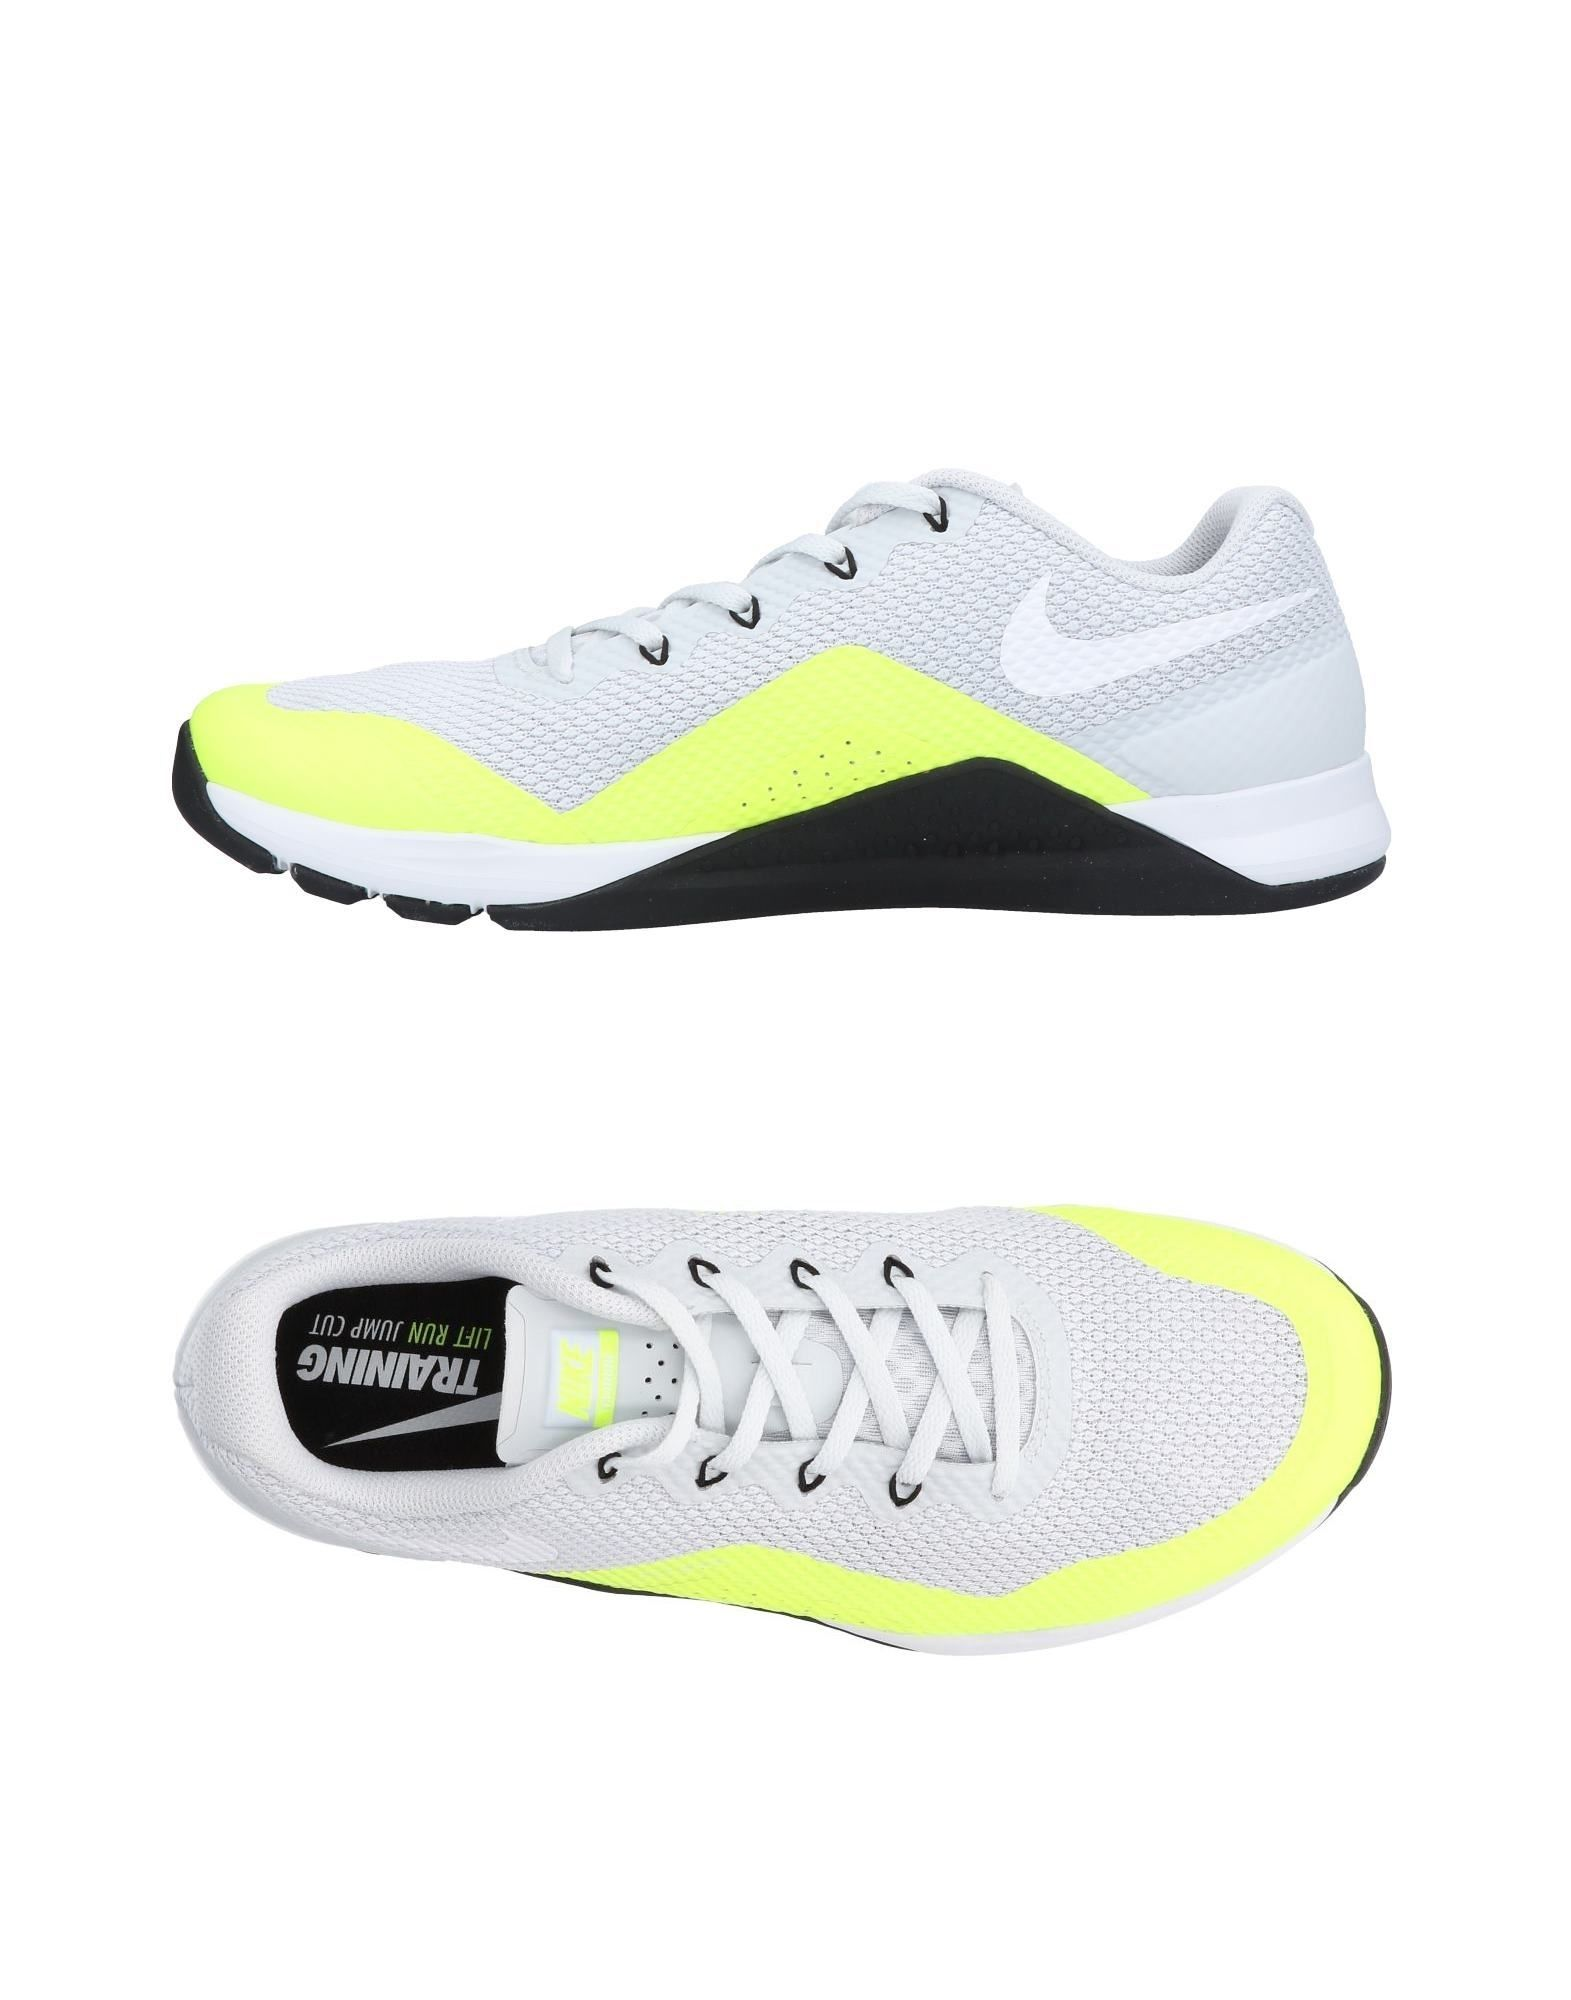 Sneakers Nike Homme - Sneakers Nike  Gris clair Mode pas cher et belle